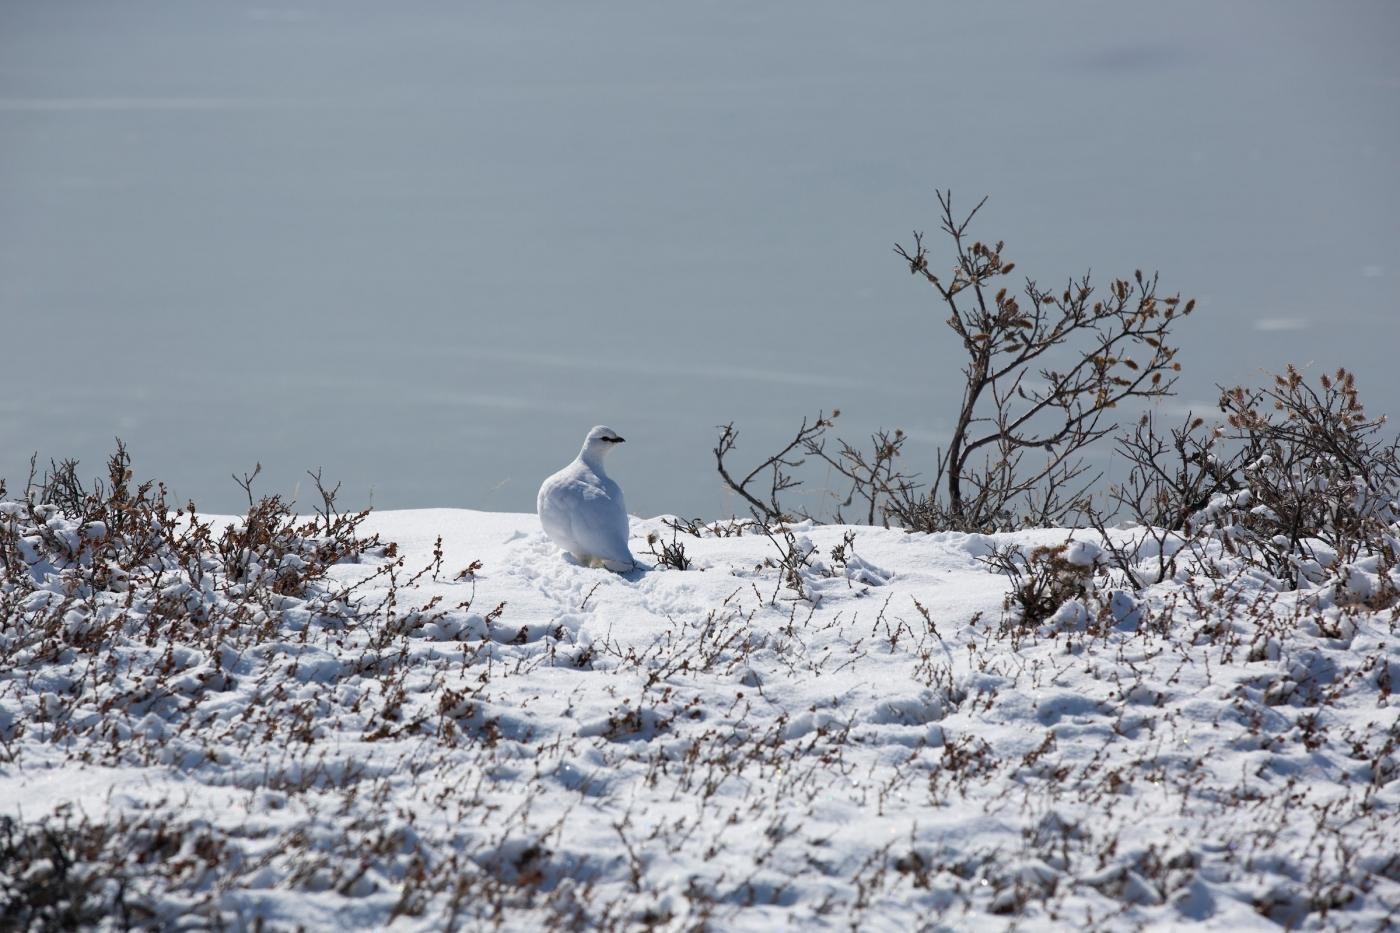 Ptarmigan blends in with the snow. Photo by Jenny Nichols - Visit Greenland